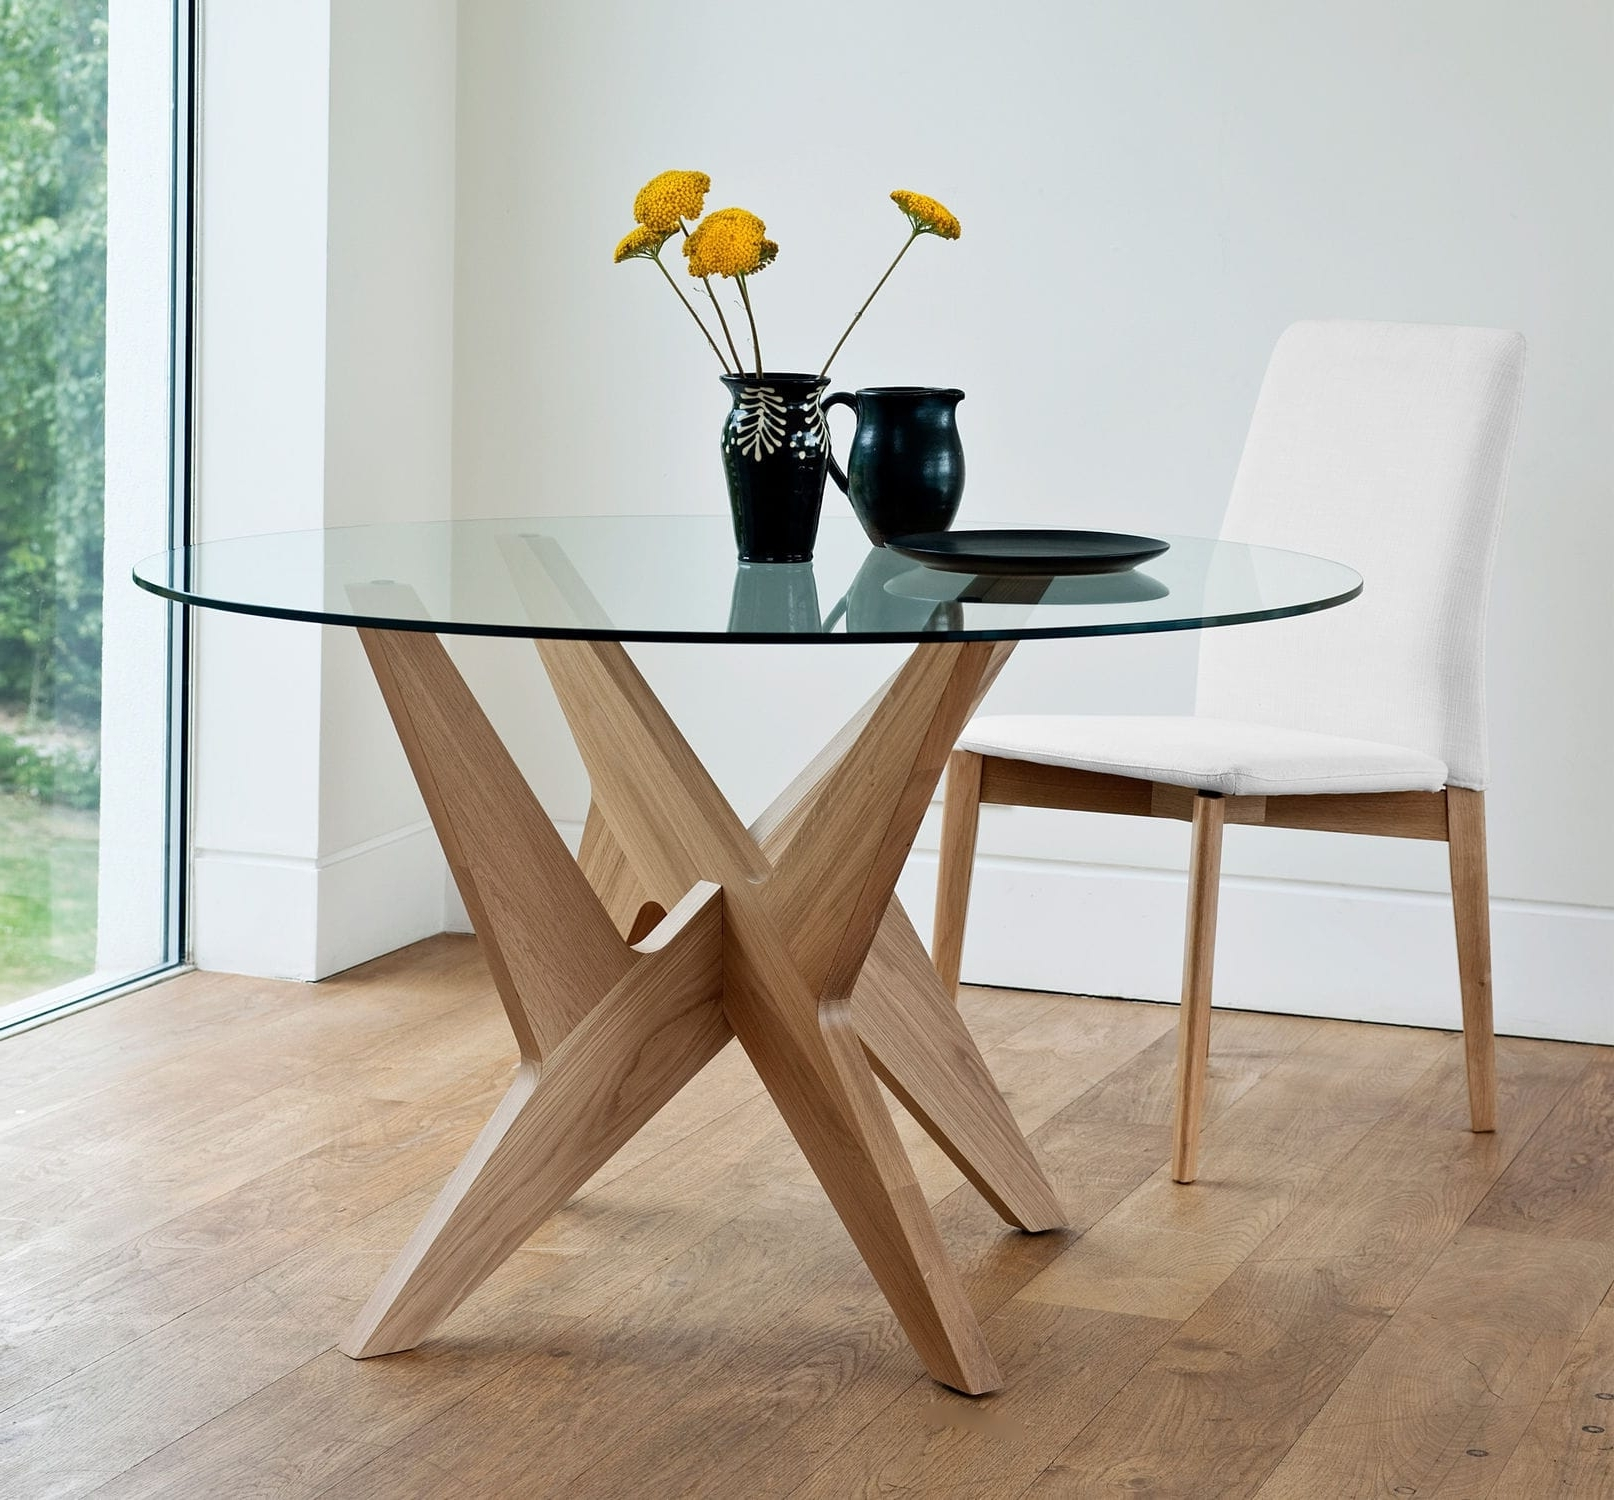 Trendy Contemporary Dining Table / Glass / Oak / Round – Cross Side Inside Round Glass And Oak Dining Tables (View 2 of 25)